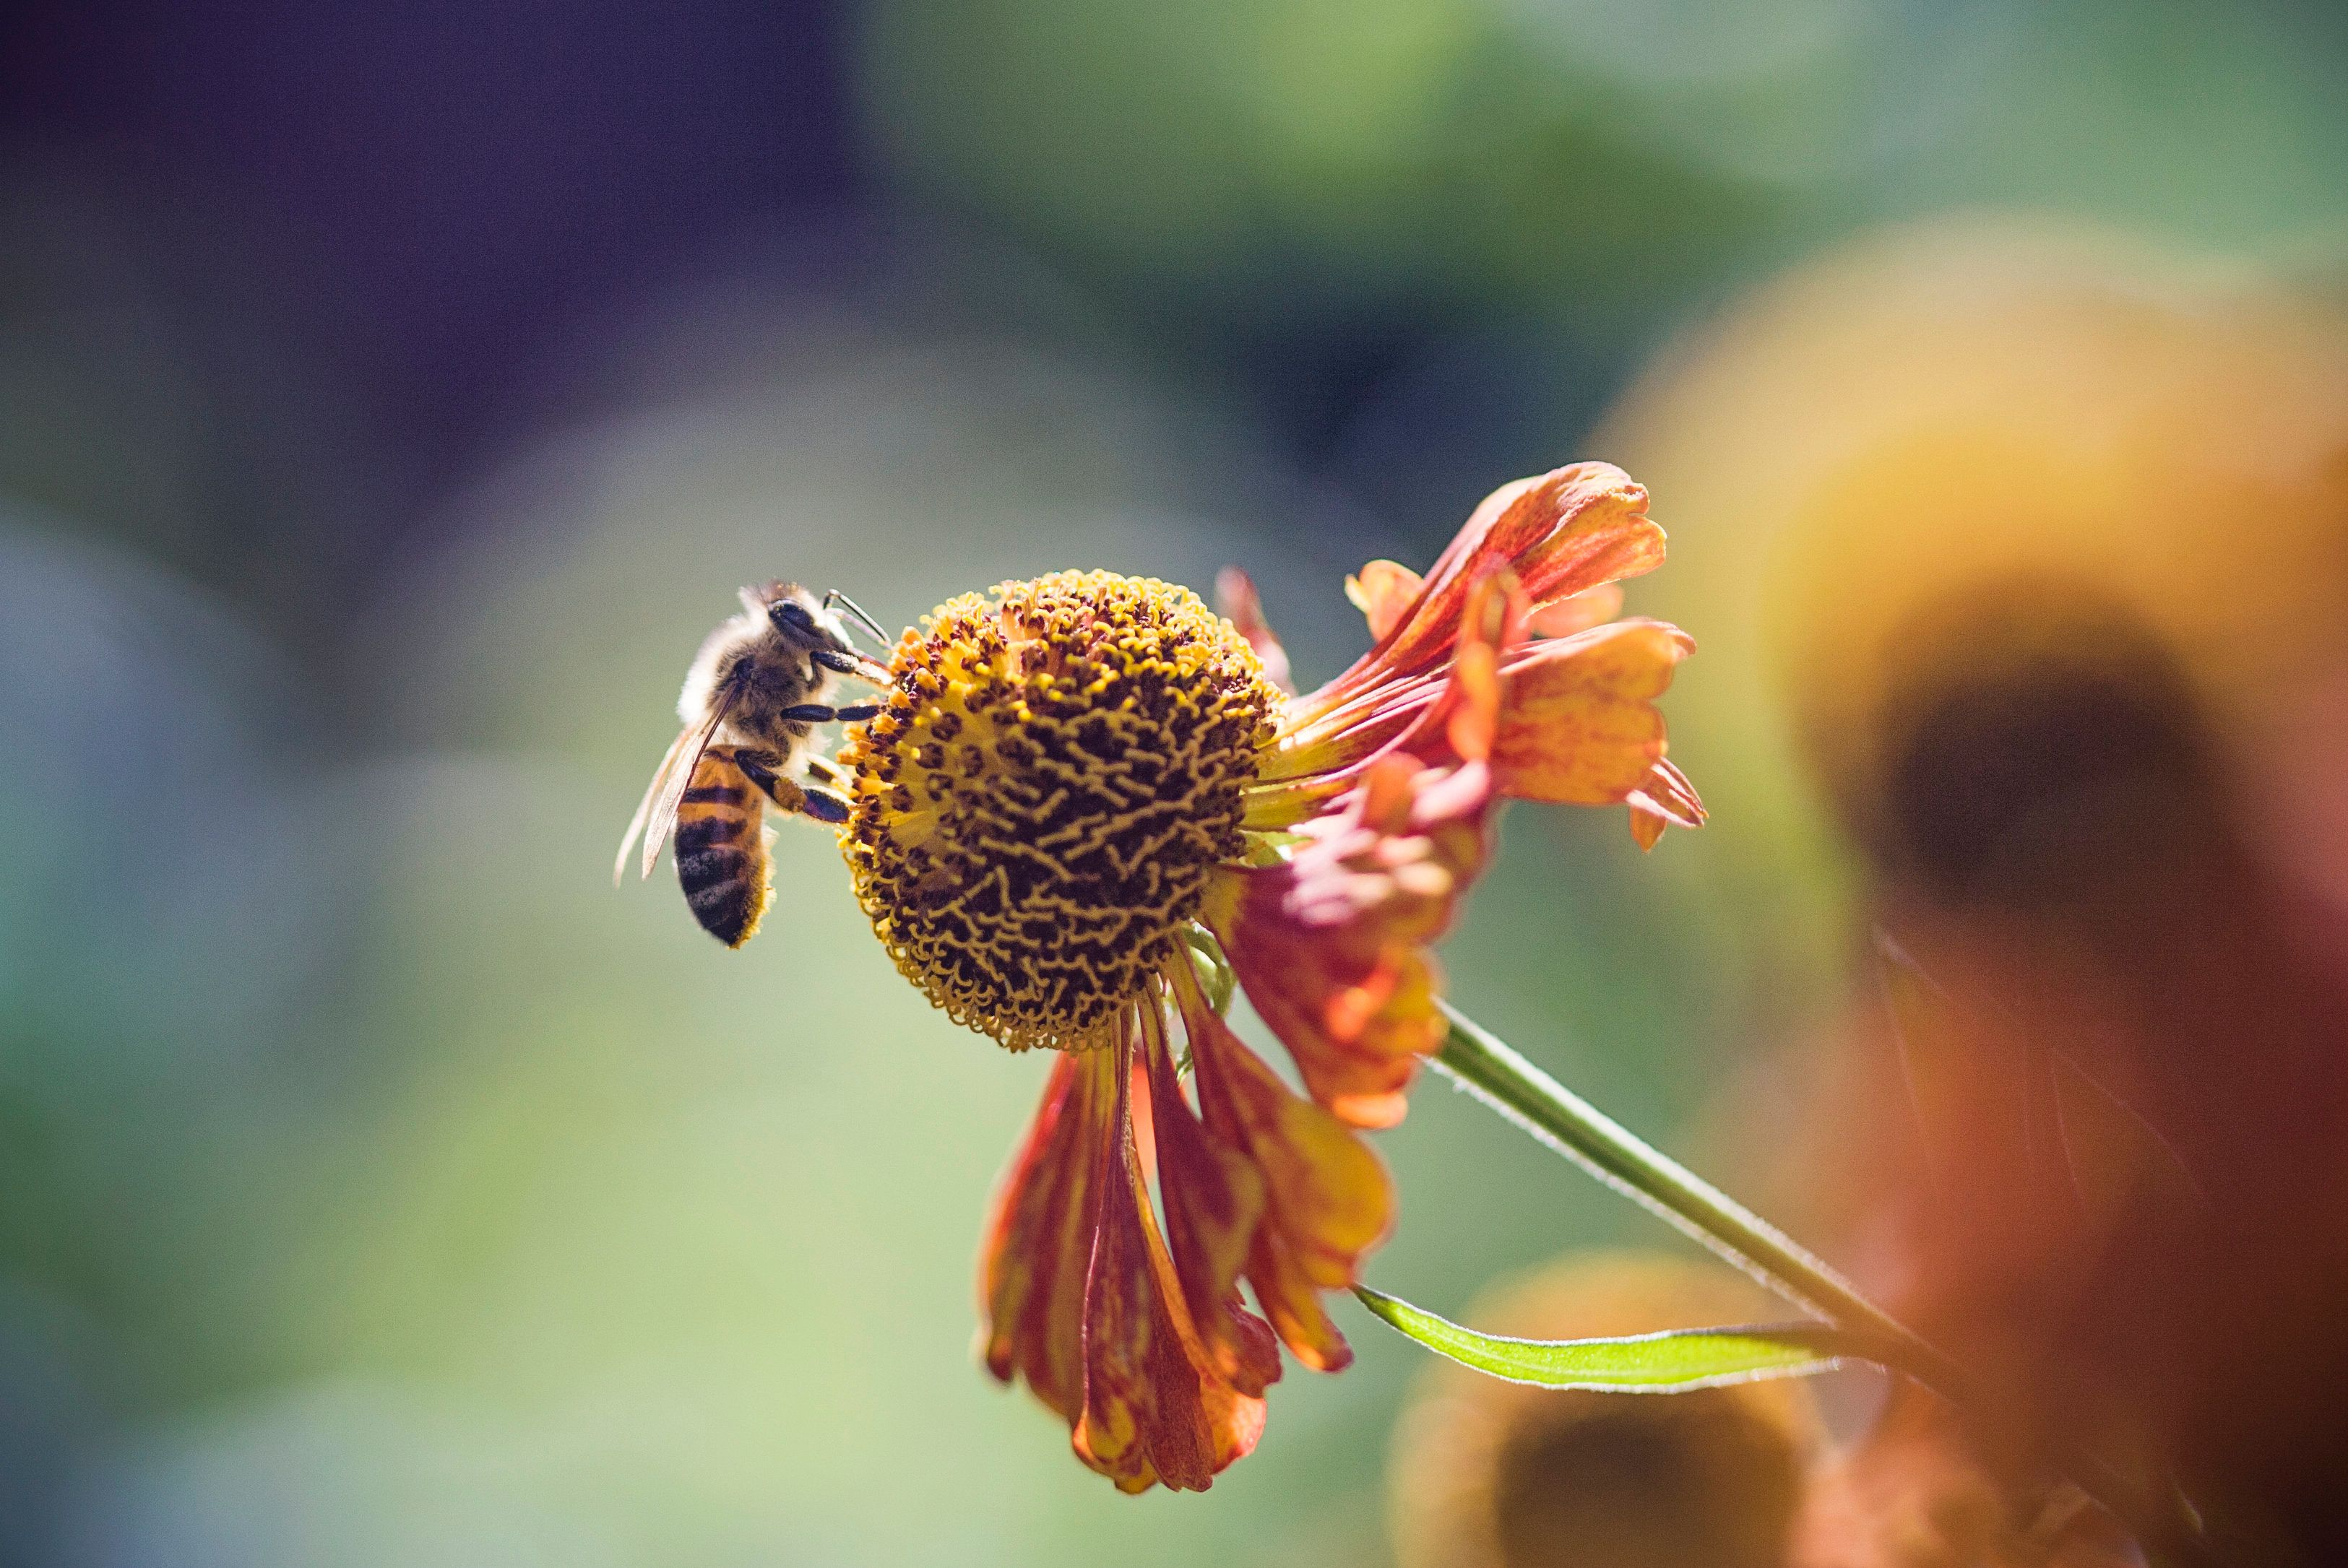 A honeybee perches on a flower.